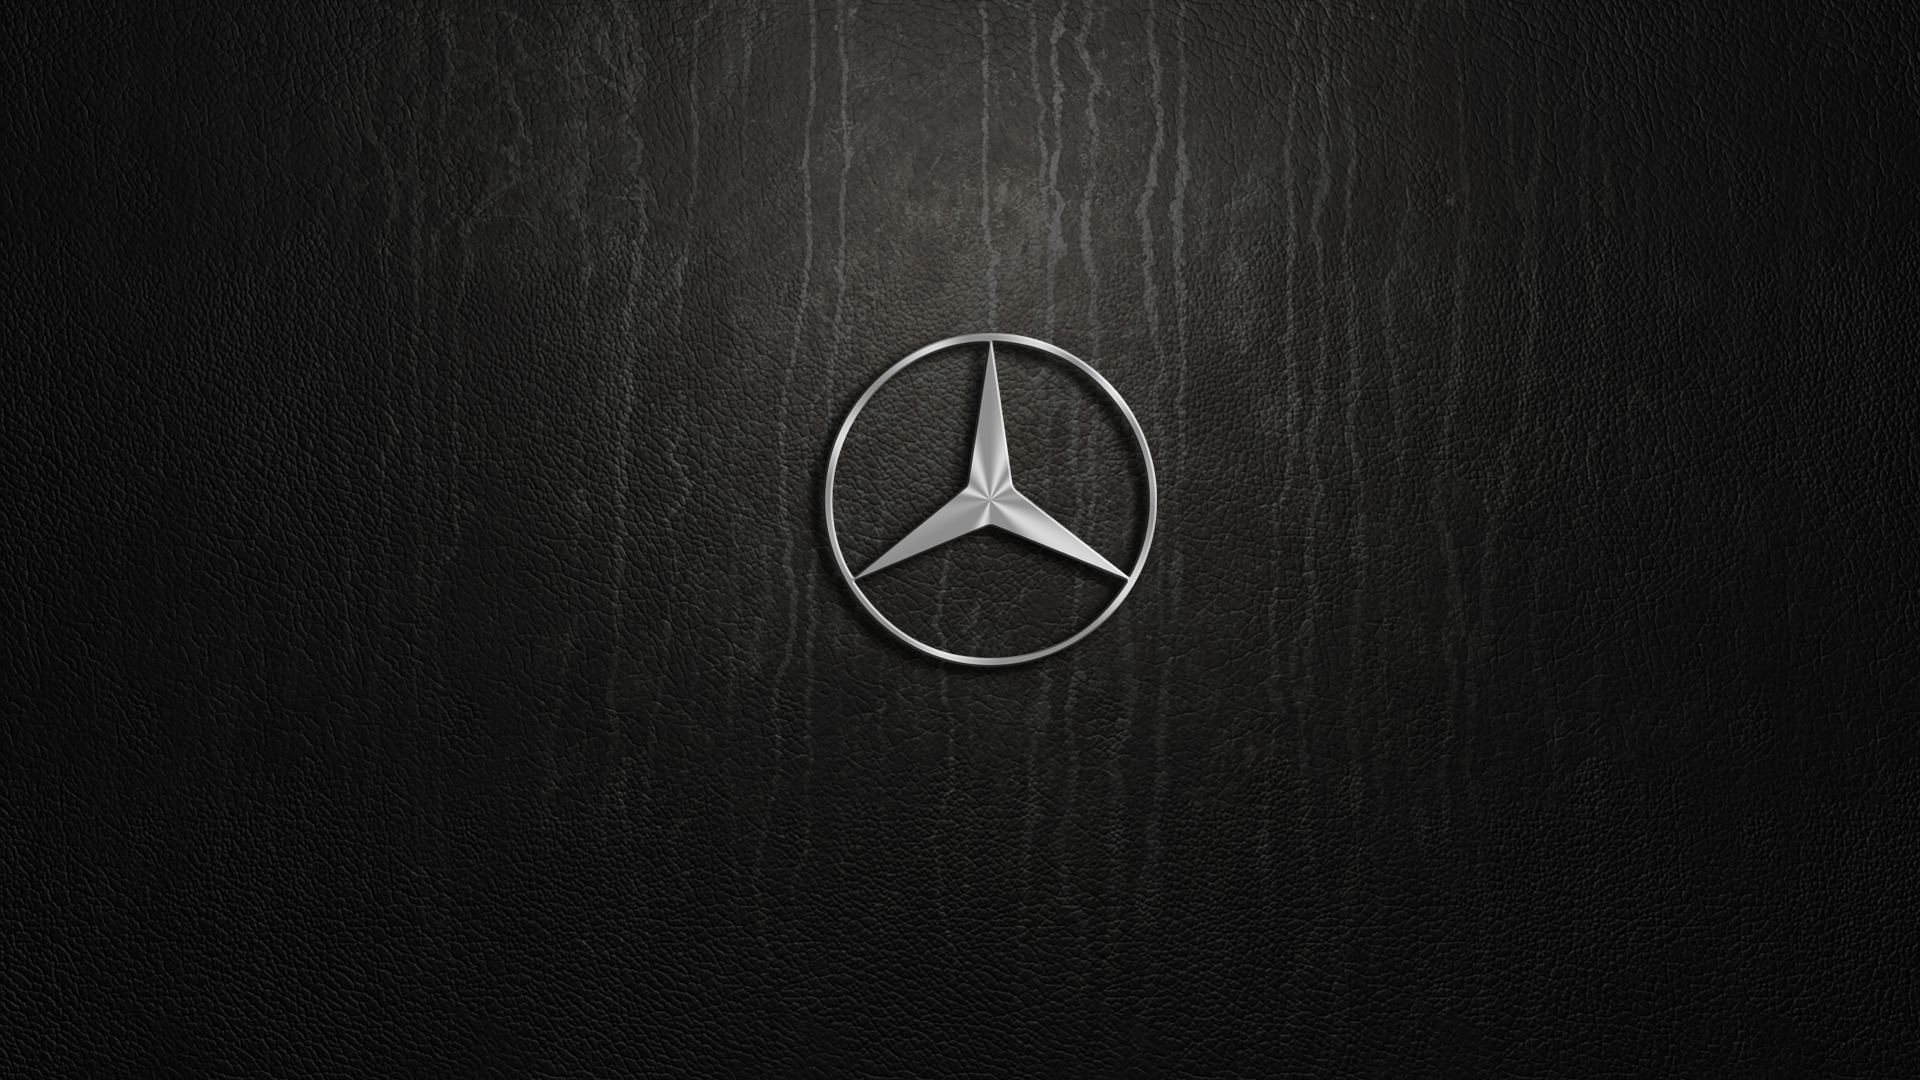 Mercedes Benz Wallpaper